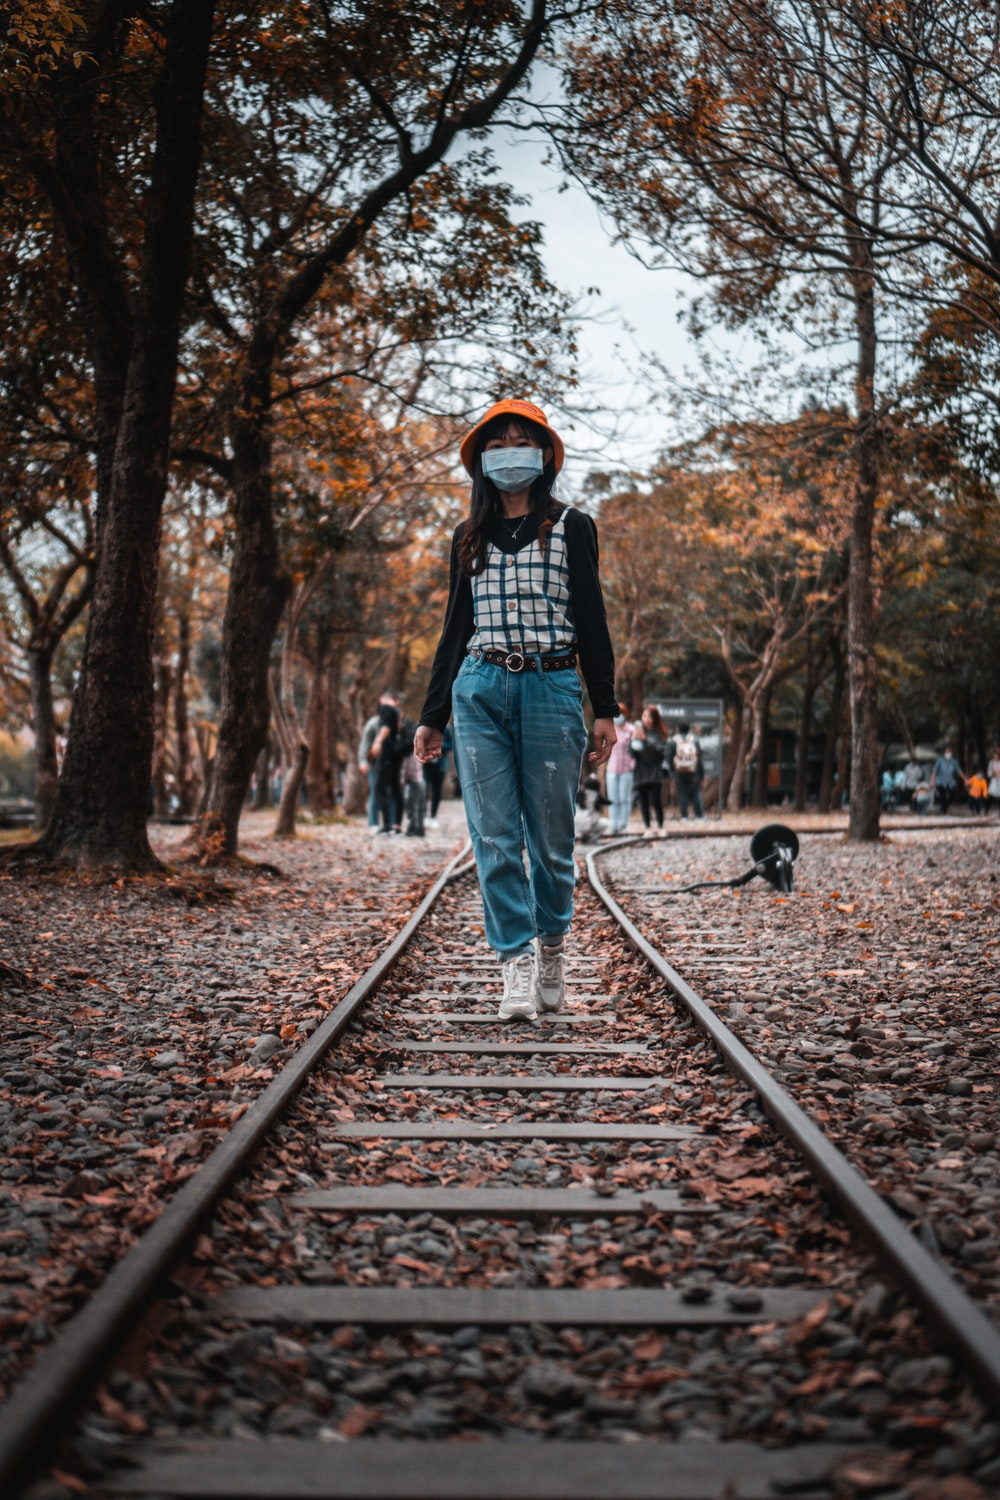 woman in black jacket and blue denim jeans standing on train rail during daytime